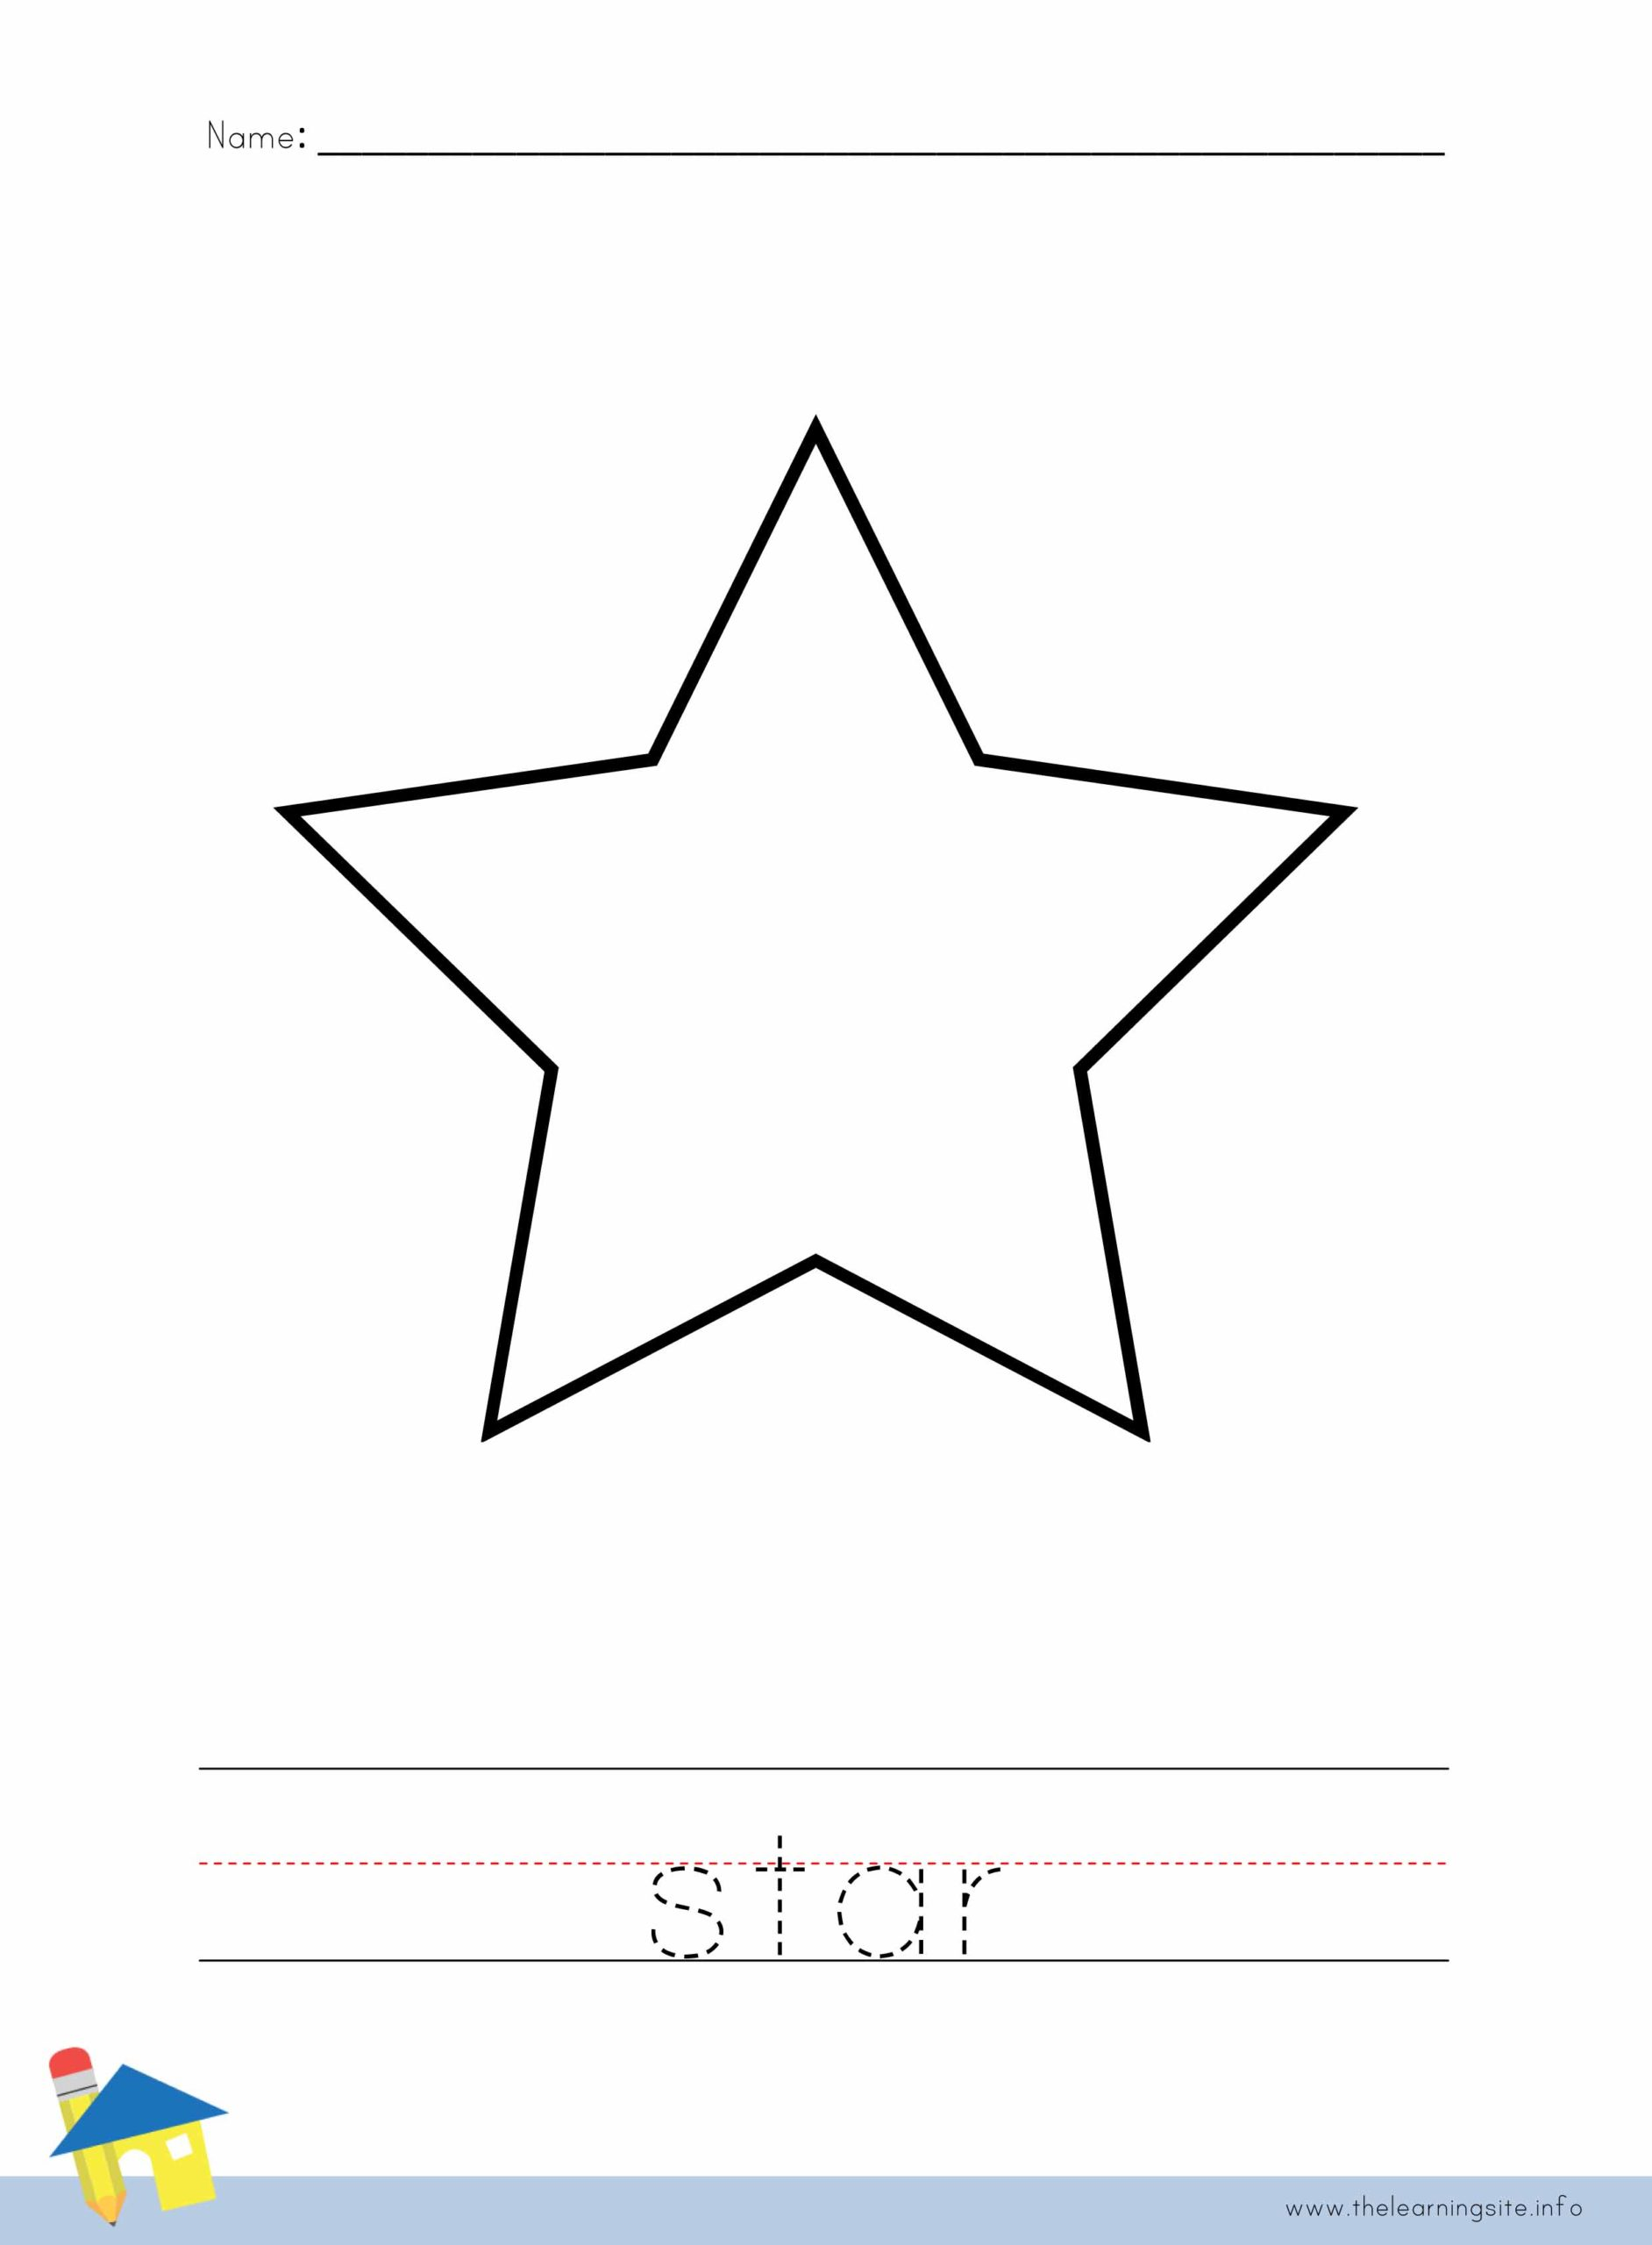 Star Coloring Worksheet The Learning Site